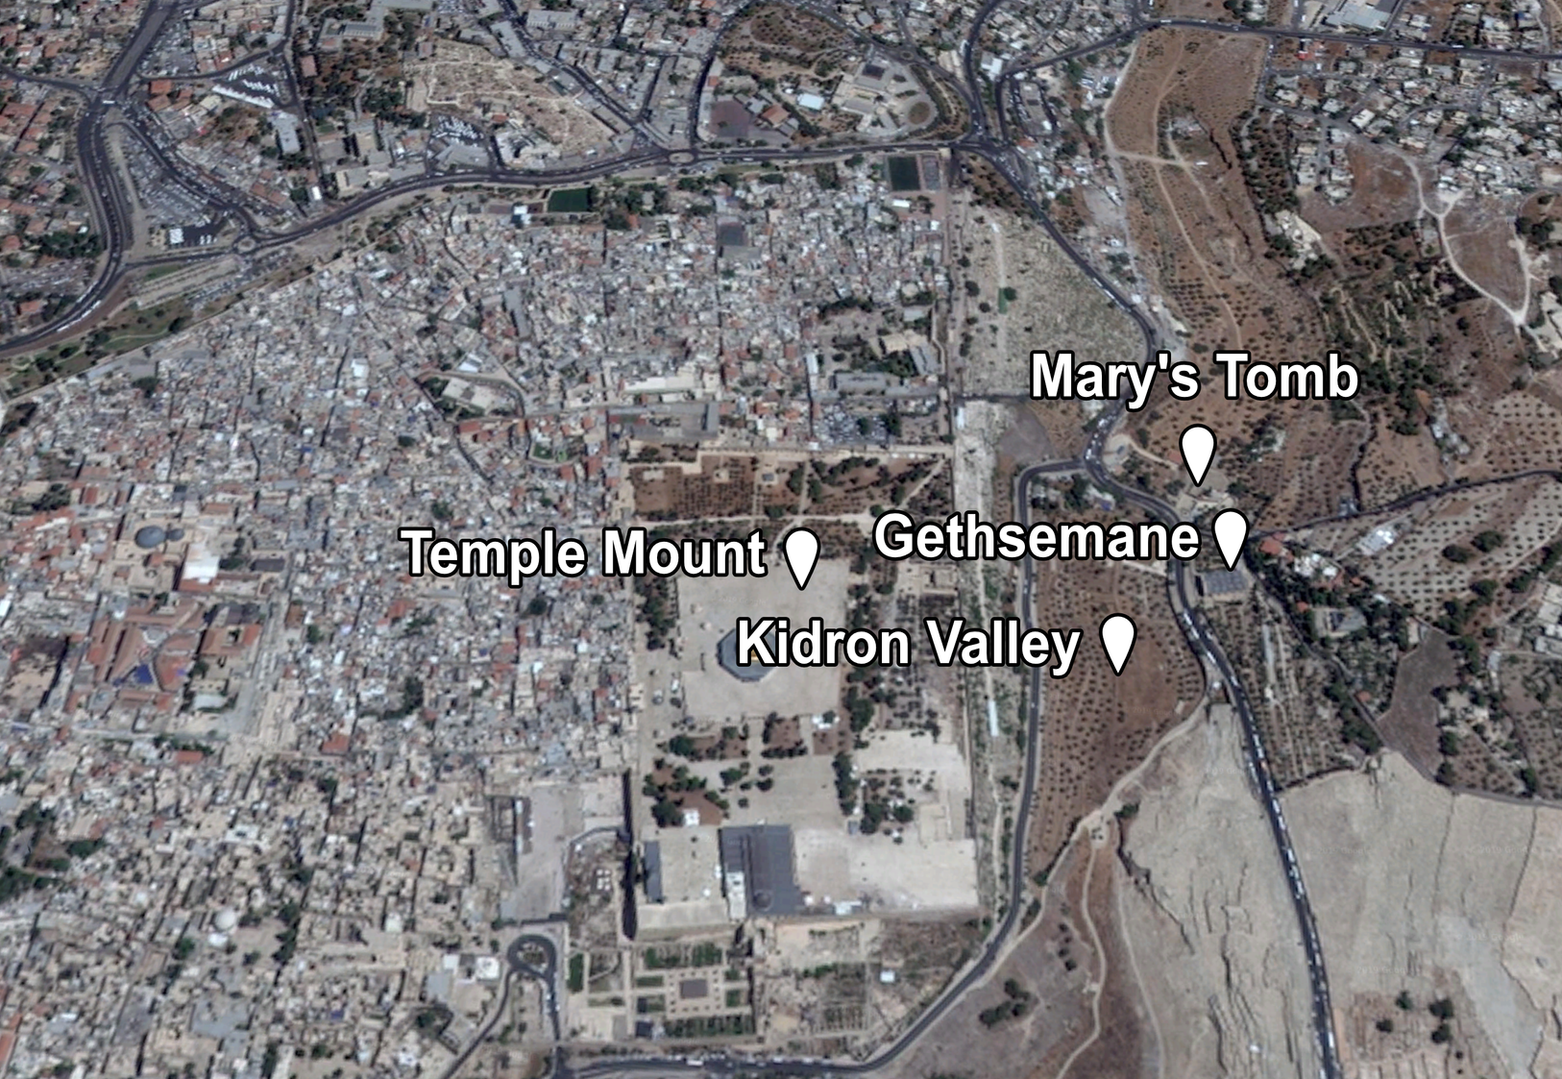 Mary's Tomb Places of Interest.png